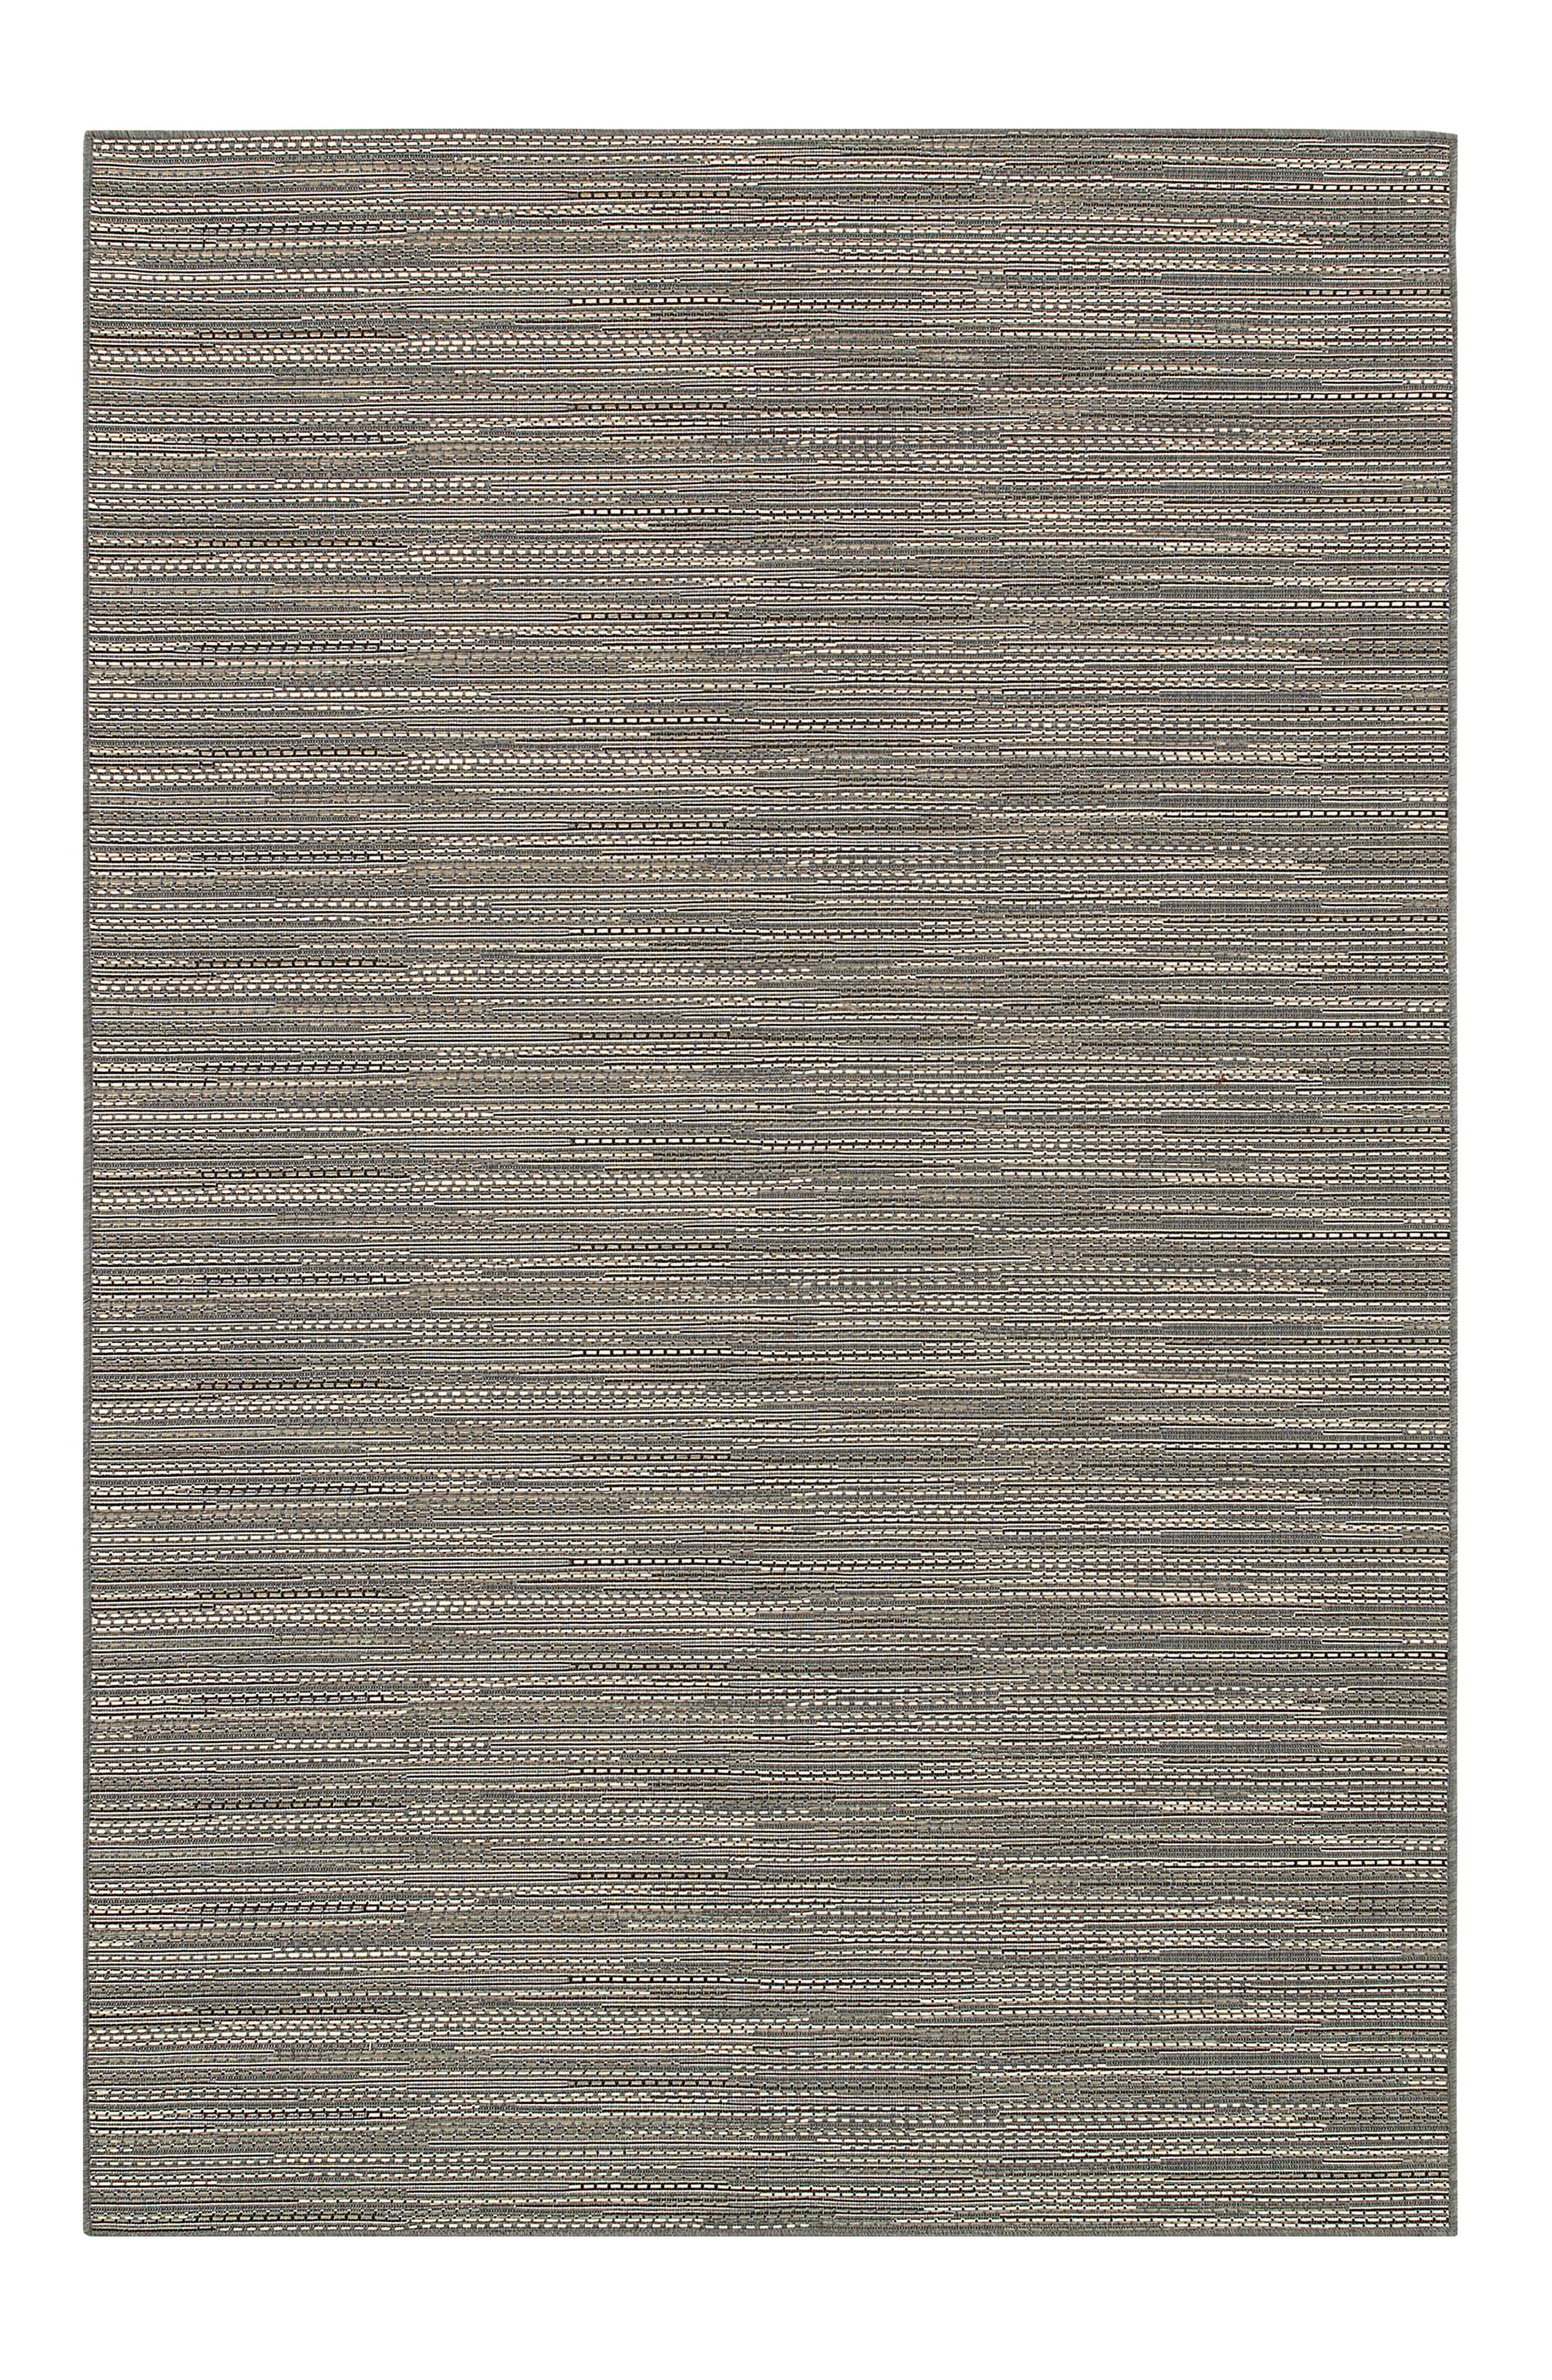 Monaco Larvotto Indoor/Outdoor Rug,                         Main,                         color, 020